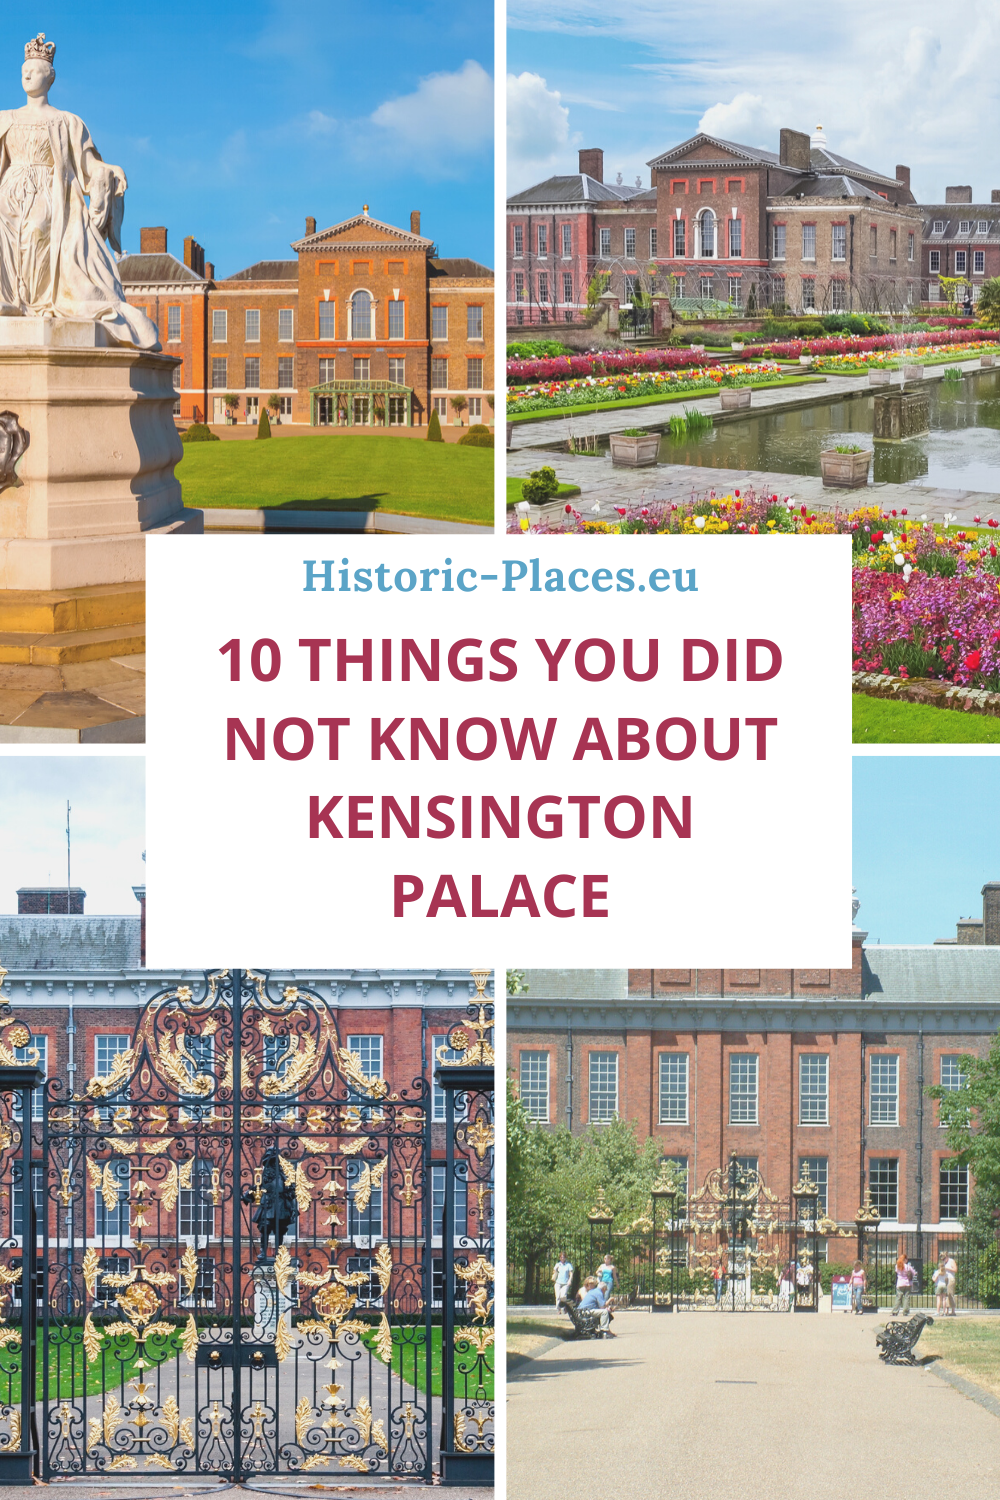 10 things you didn't know about Kensington Palace